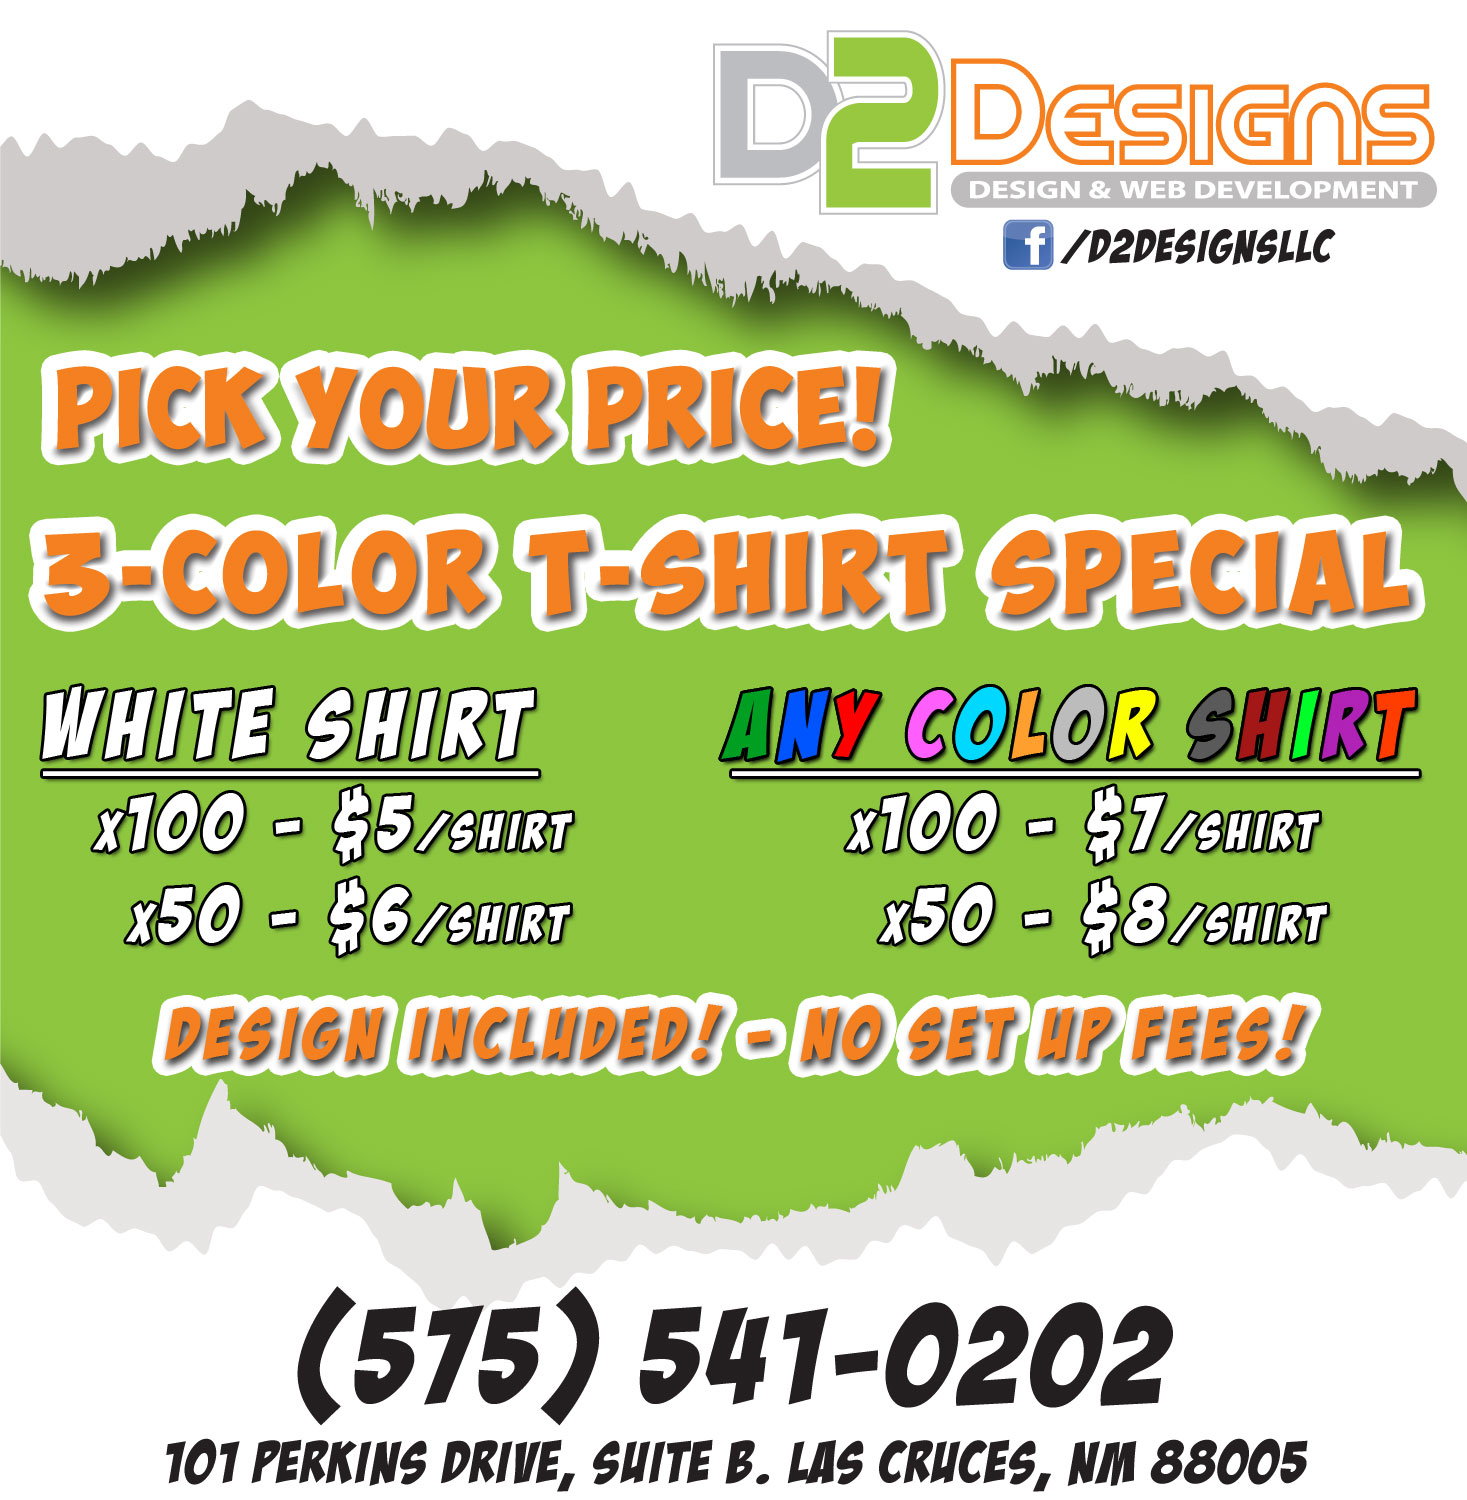 Design t shirt price - Pick Your Price 3 Color Tshirt Special